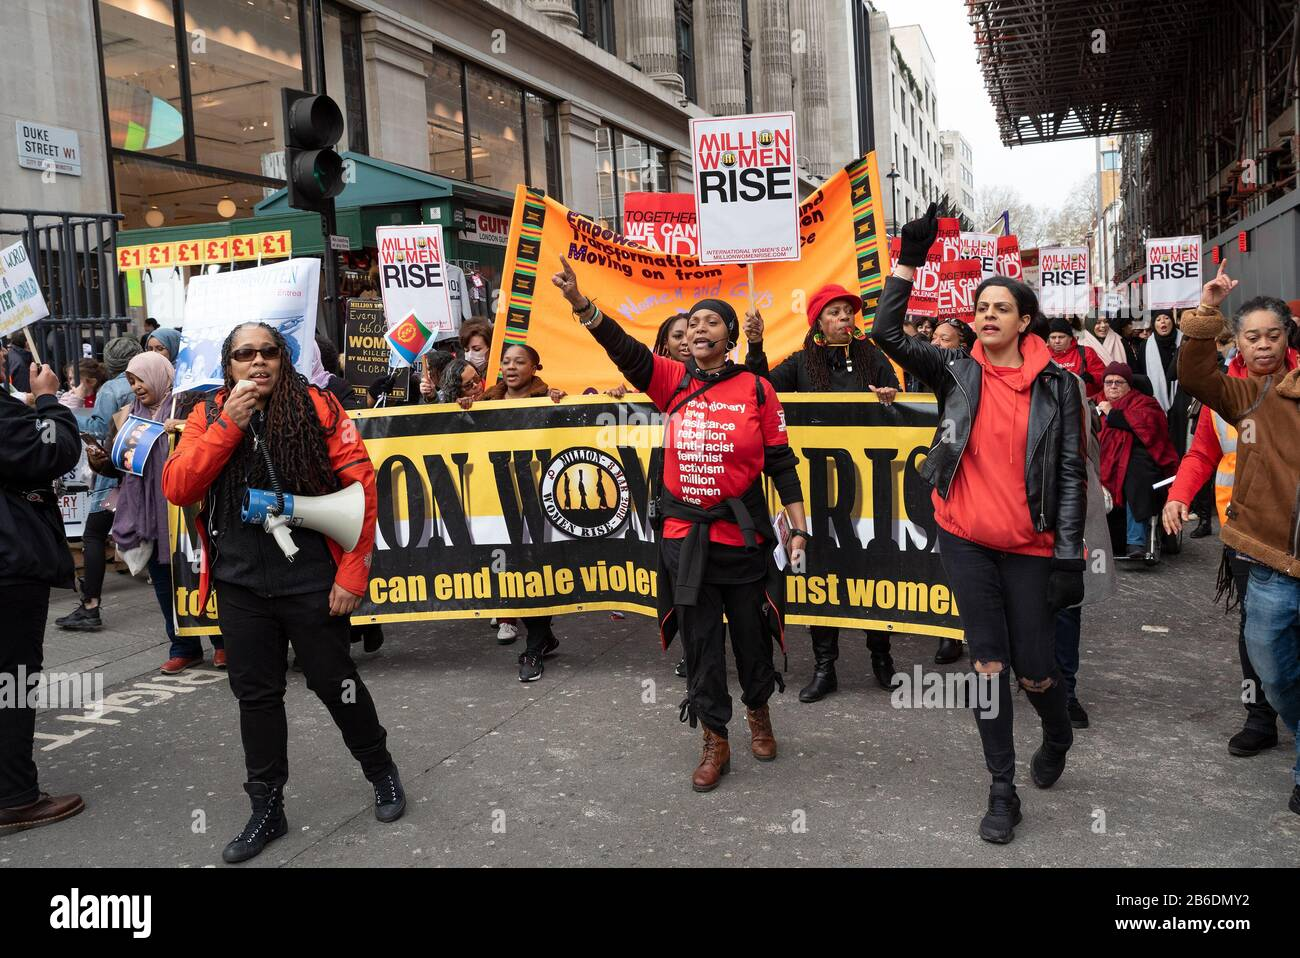 london-uk-7th-march-2020-the-13th-annual-million-women-rise-march-through-central-london-marching-against-male-violence-to-women-and-girls-starting-at-the-duke-streetoxford-street-junction-and-finishing-at-trafalgar-square-credit-stephen-bellalamy-2B6DMY2.jpg